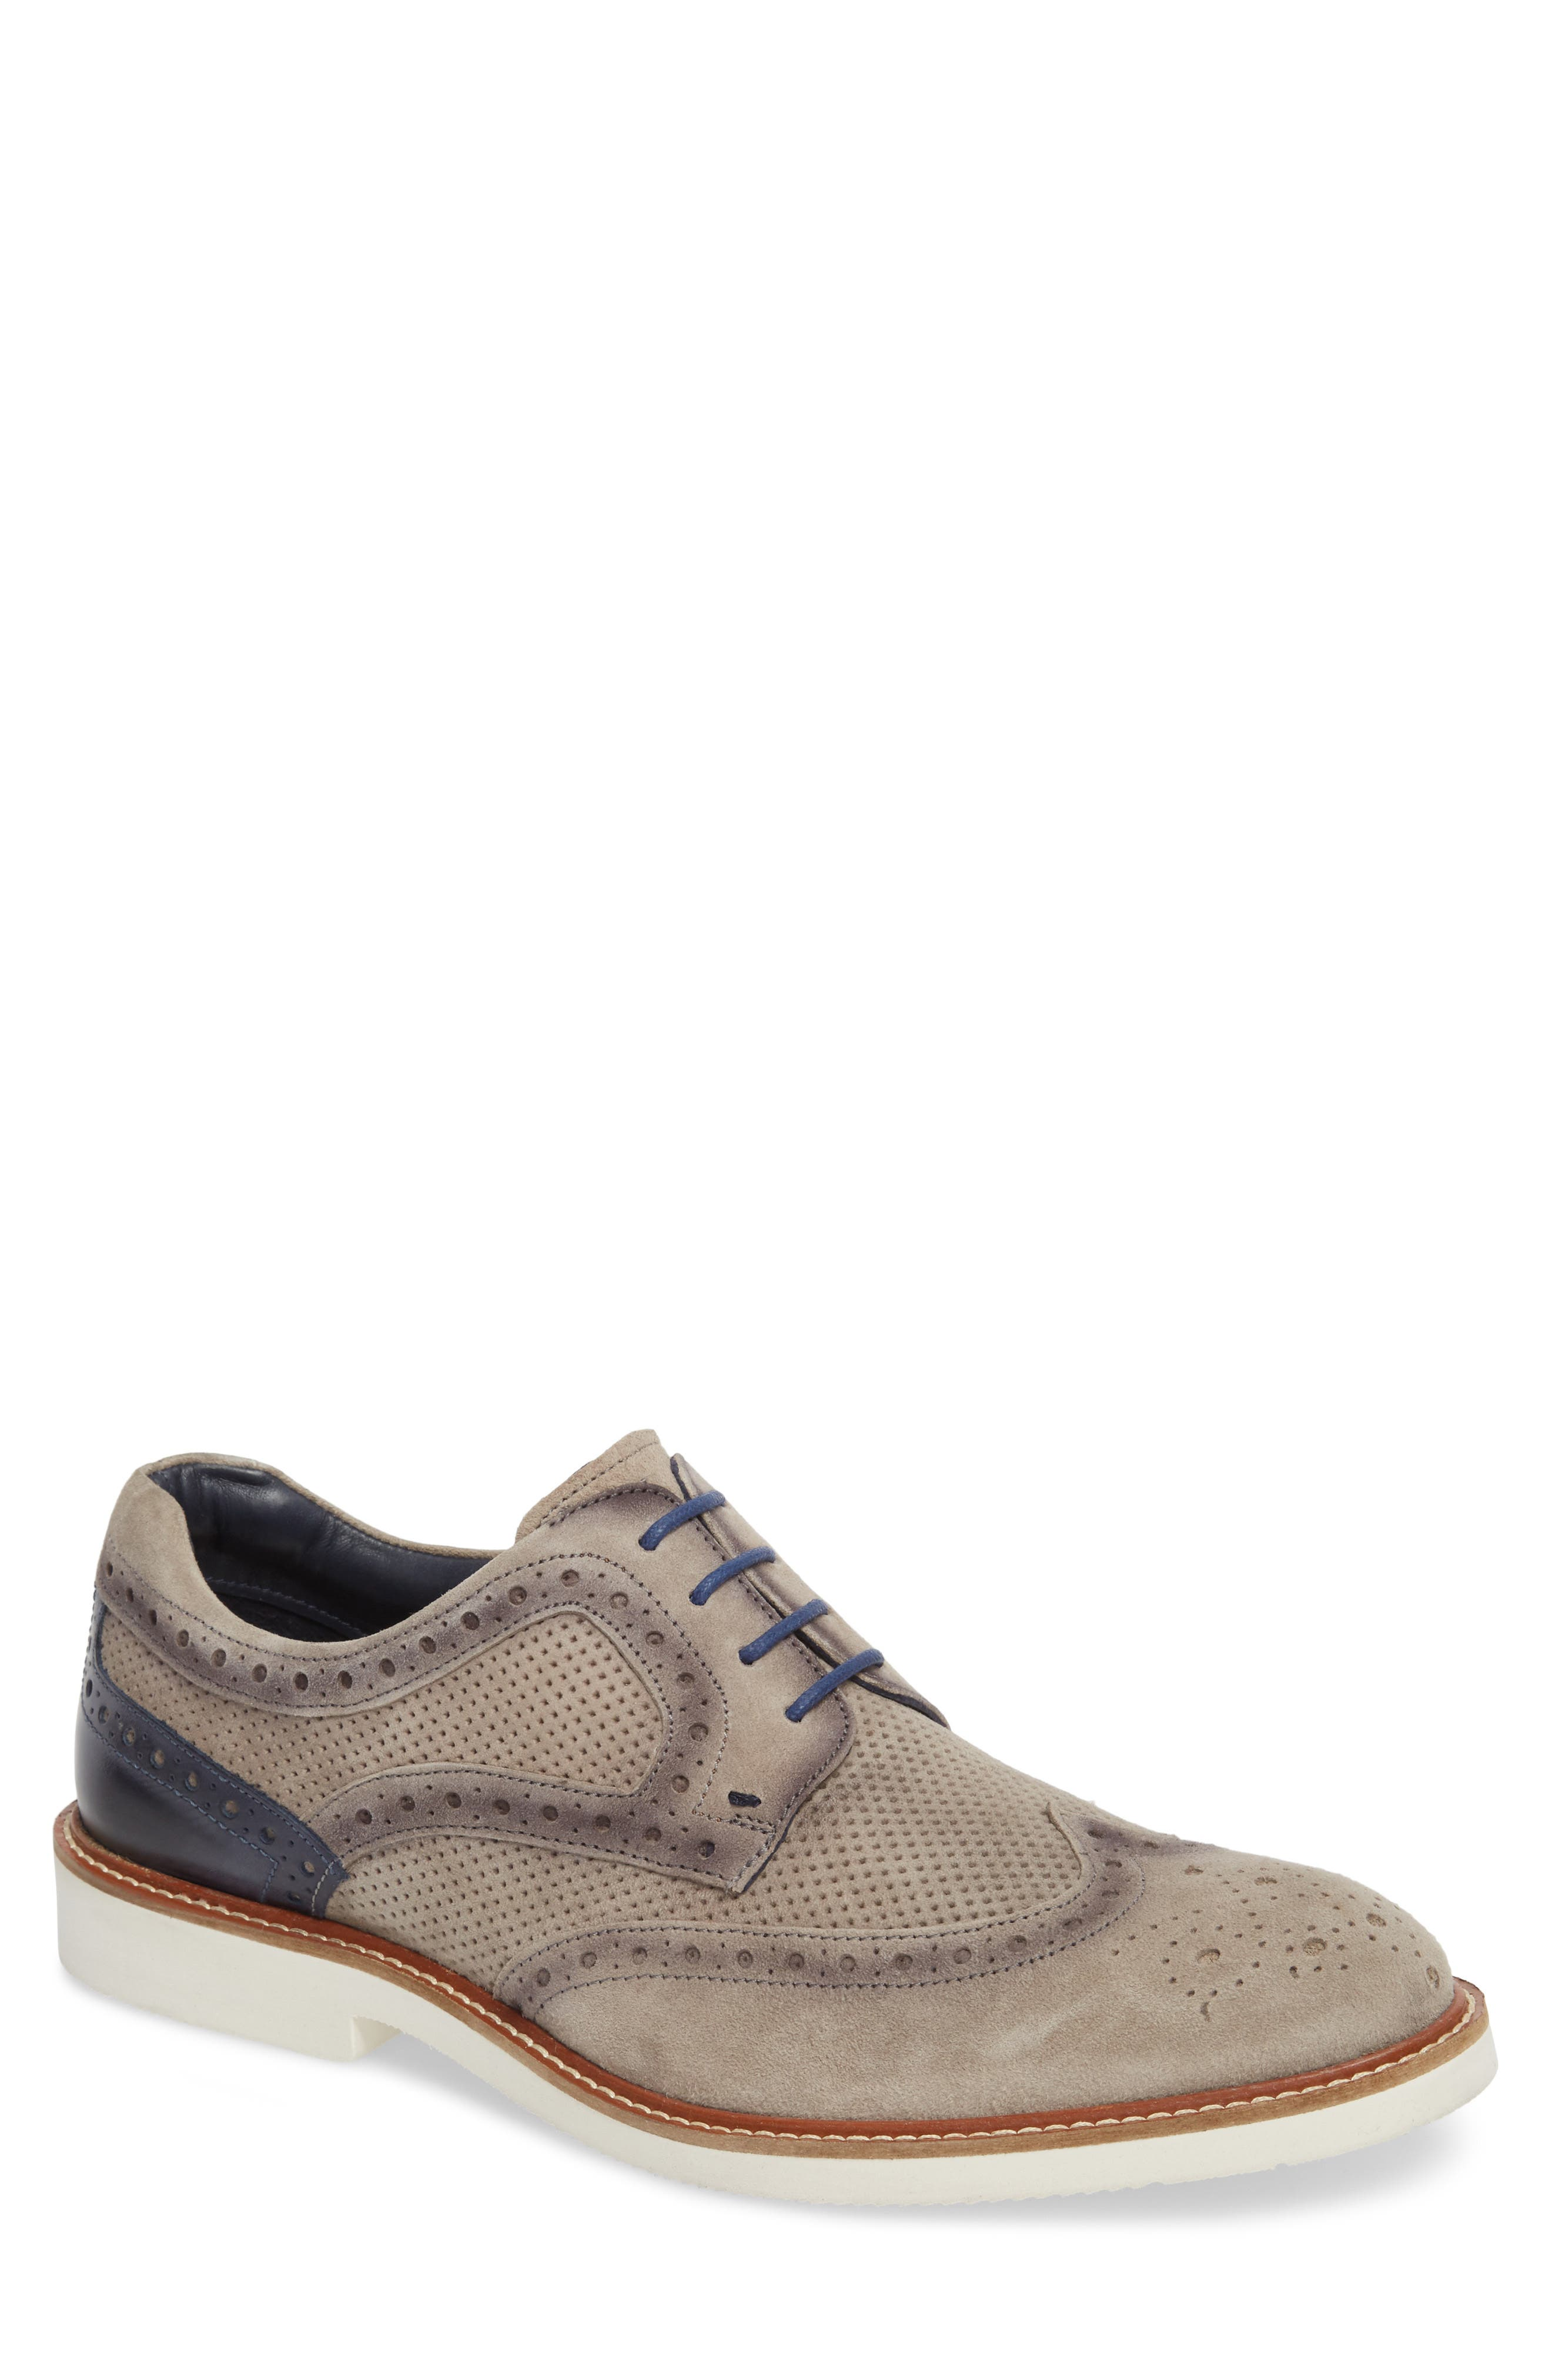 Shaw Perforated Wingtip Derby,                         Main,                         color, Grey Suede